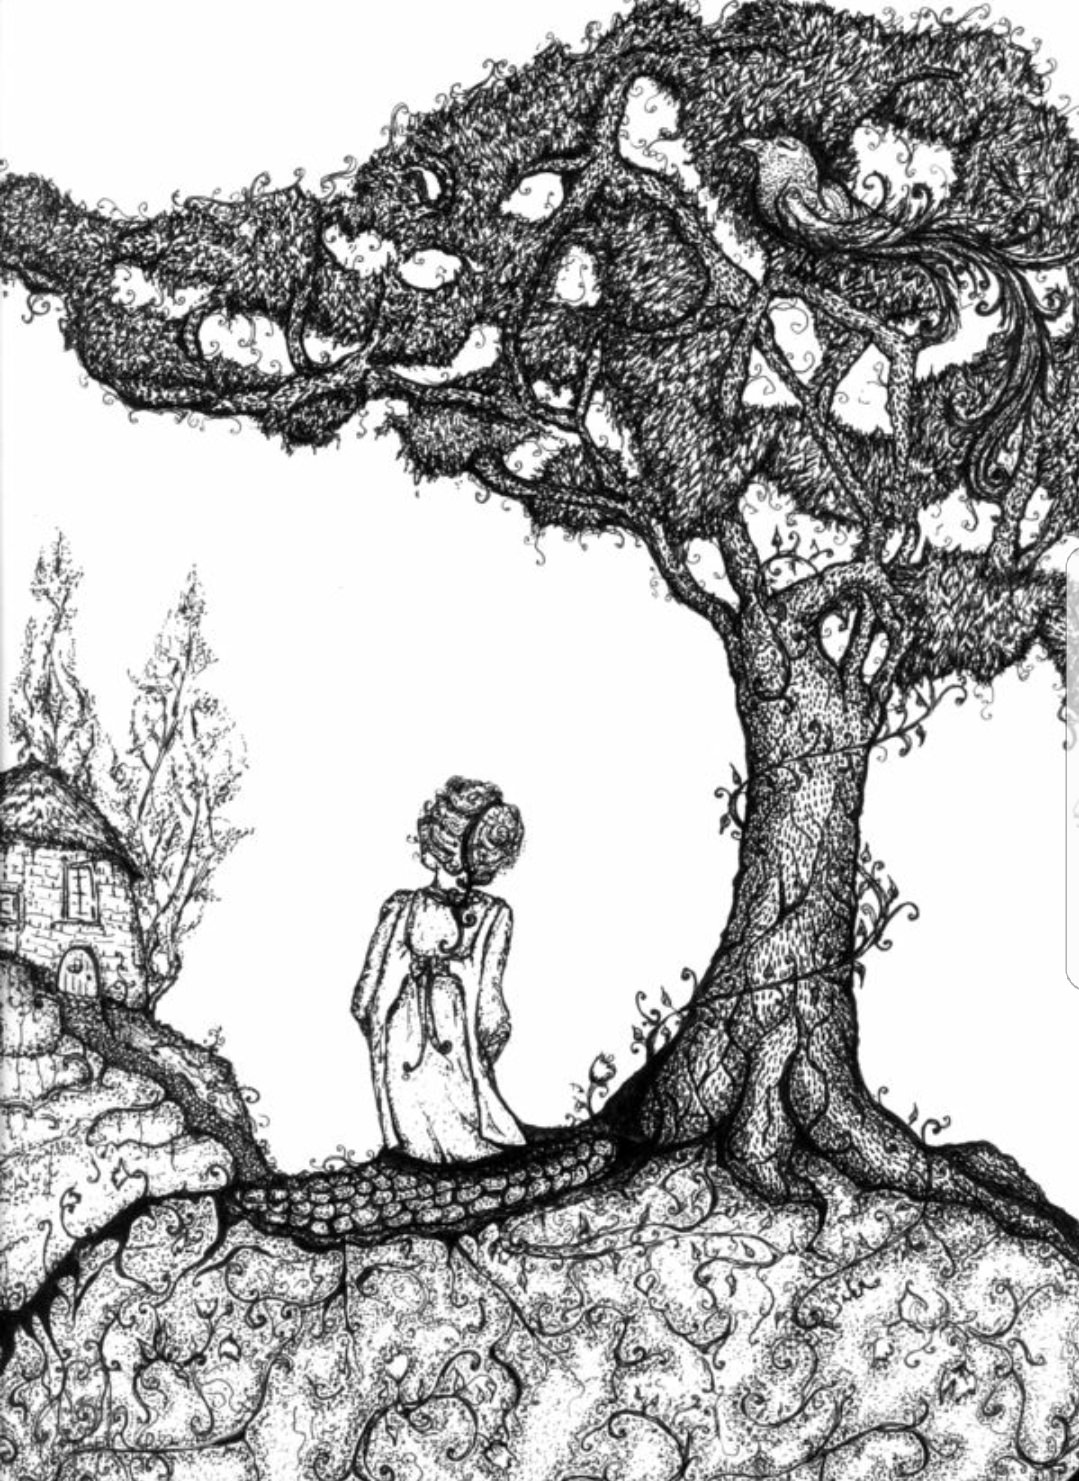 Illustration from the Juniper Tree, Grimm's Fairy Tales | sourced via Pinterest